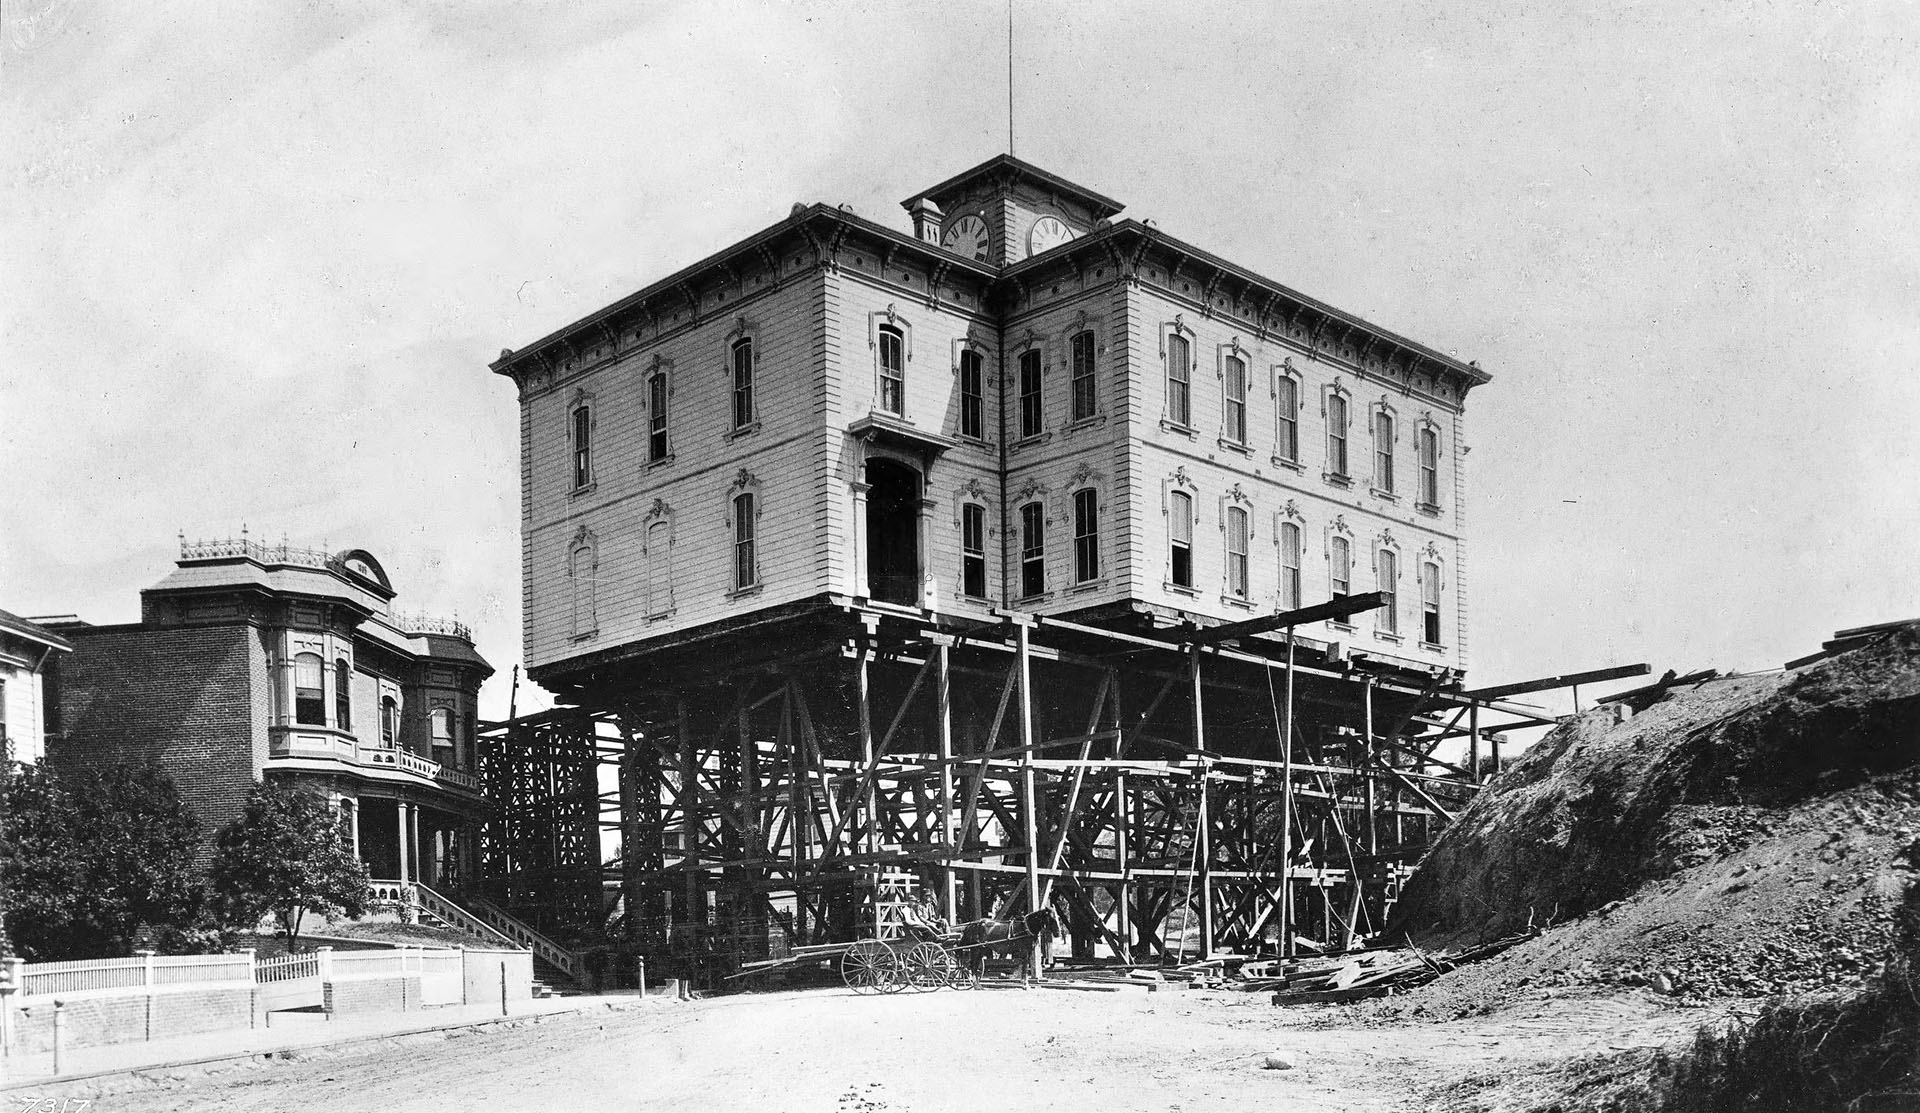 In 1886, house-moving contractors hoisted the Los Angeles Central School building on stilts and moved it across the city. Courtesy of the USC Libraries - California Historical Society Collection.